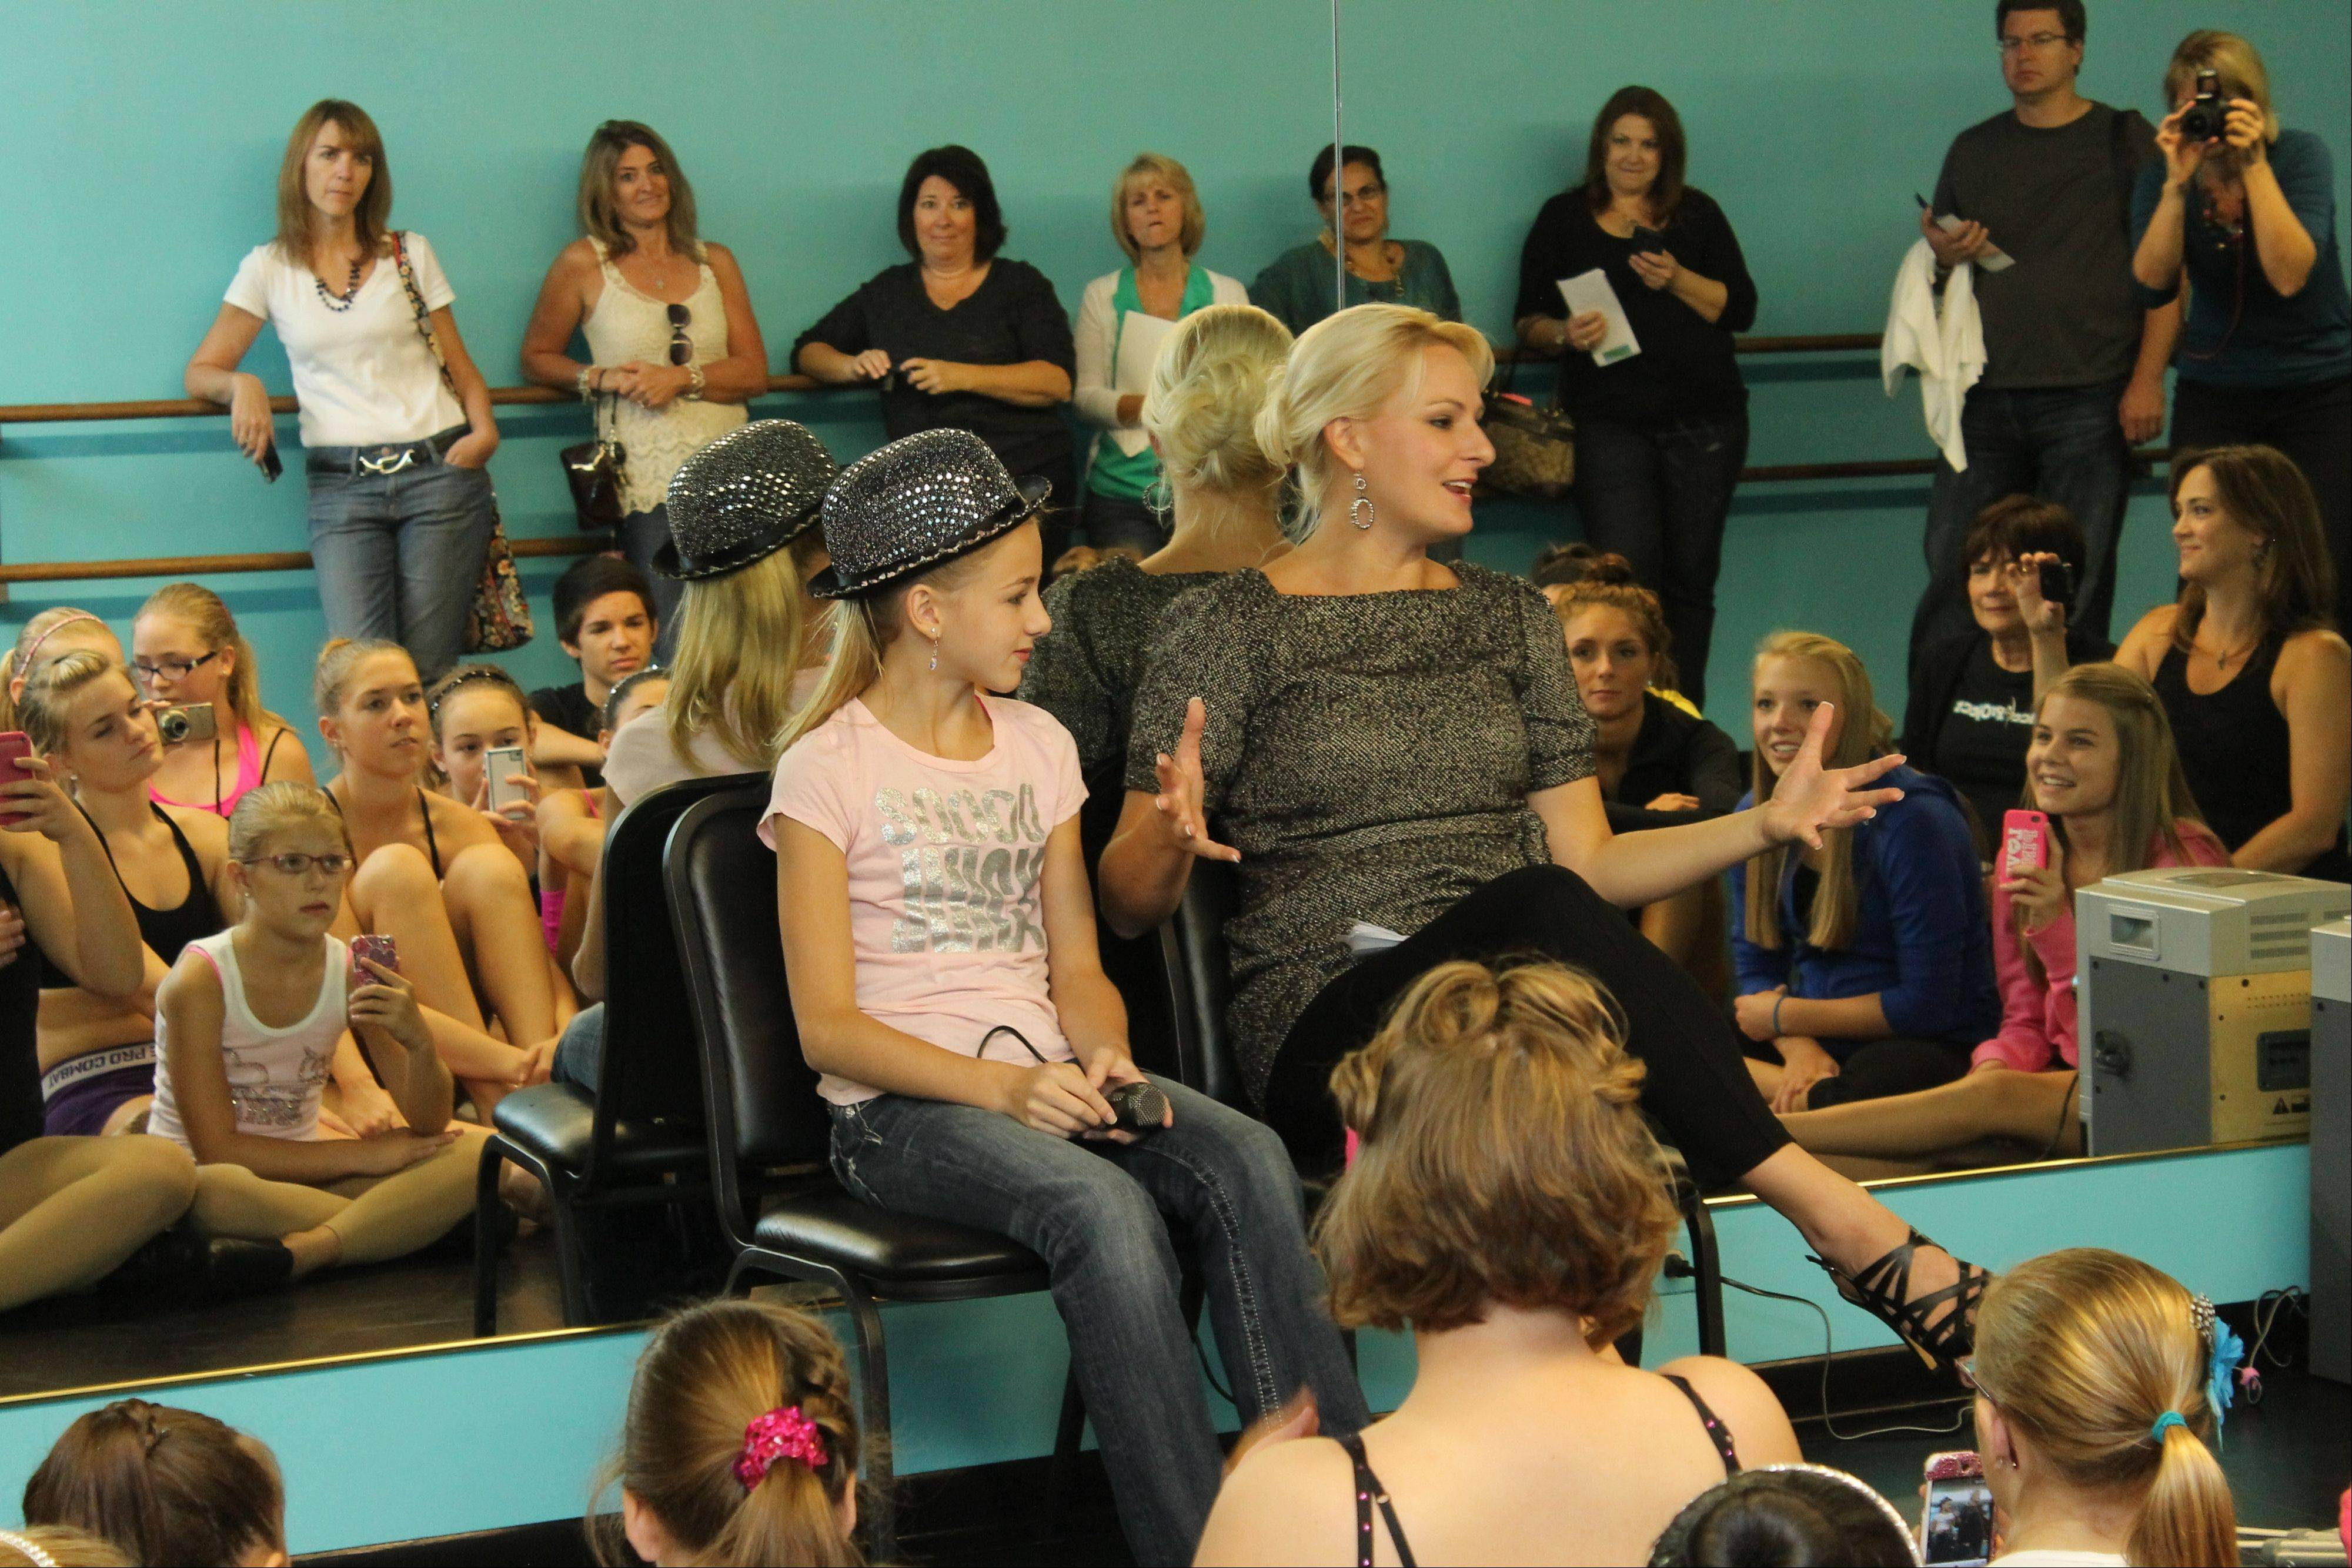 Chloe Lukasiak and her mom, Christi, from Lifetime�s reality TV show �Dance Moms� take part in a question-and-answer session with students at the Dance Project dance studio in Hoffman Estates. The mother-daughter duo visited the studio Saturday.